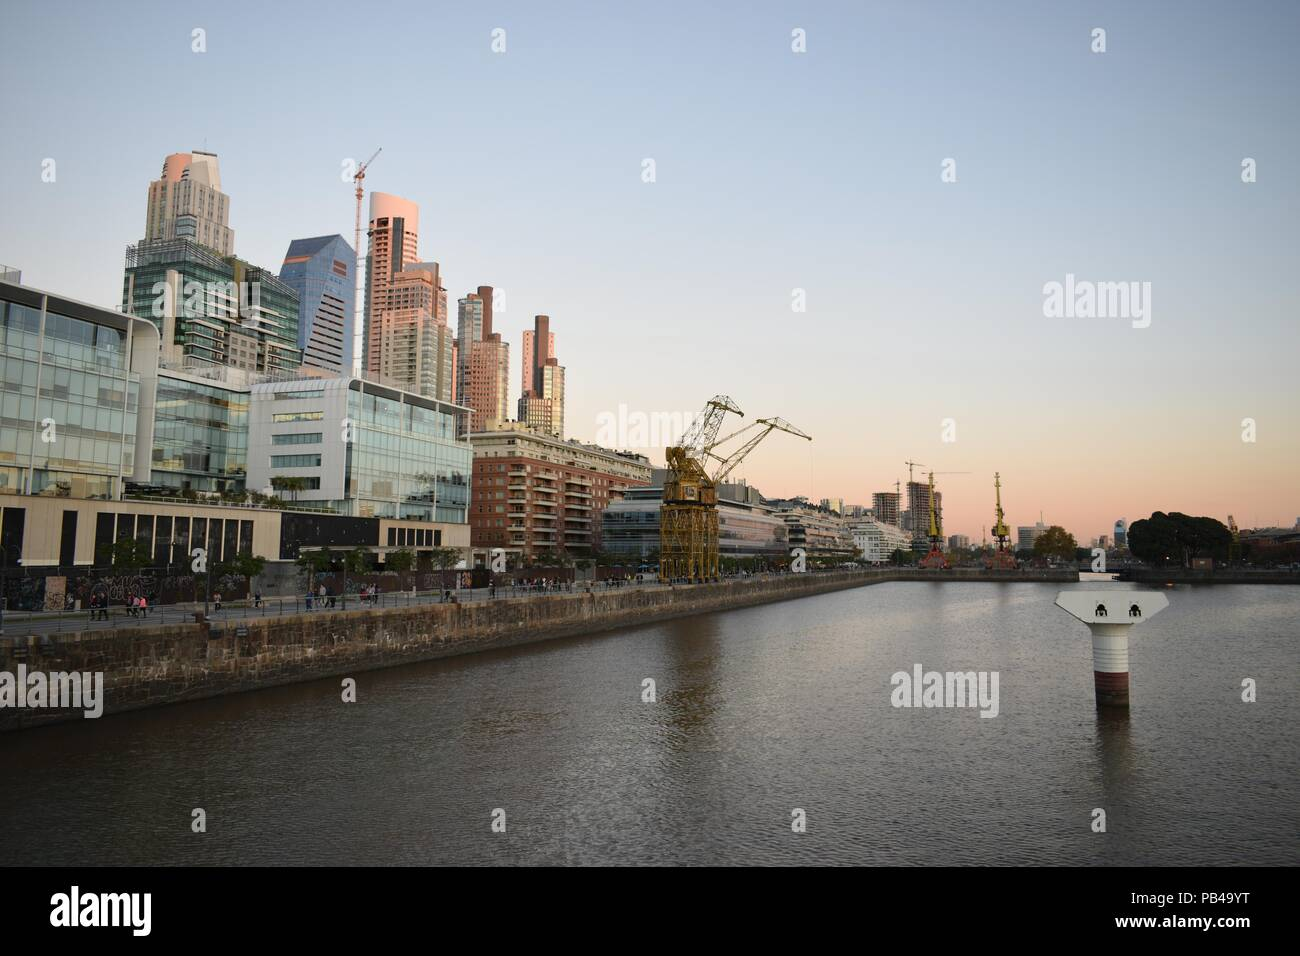 sunset at skyline of Puerto Madero, Buenos Aires, Argentina - Stock Image